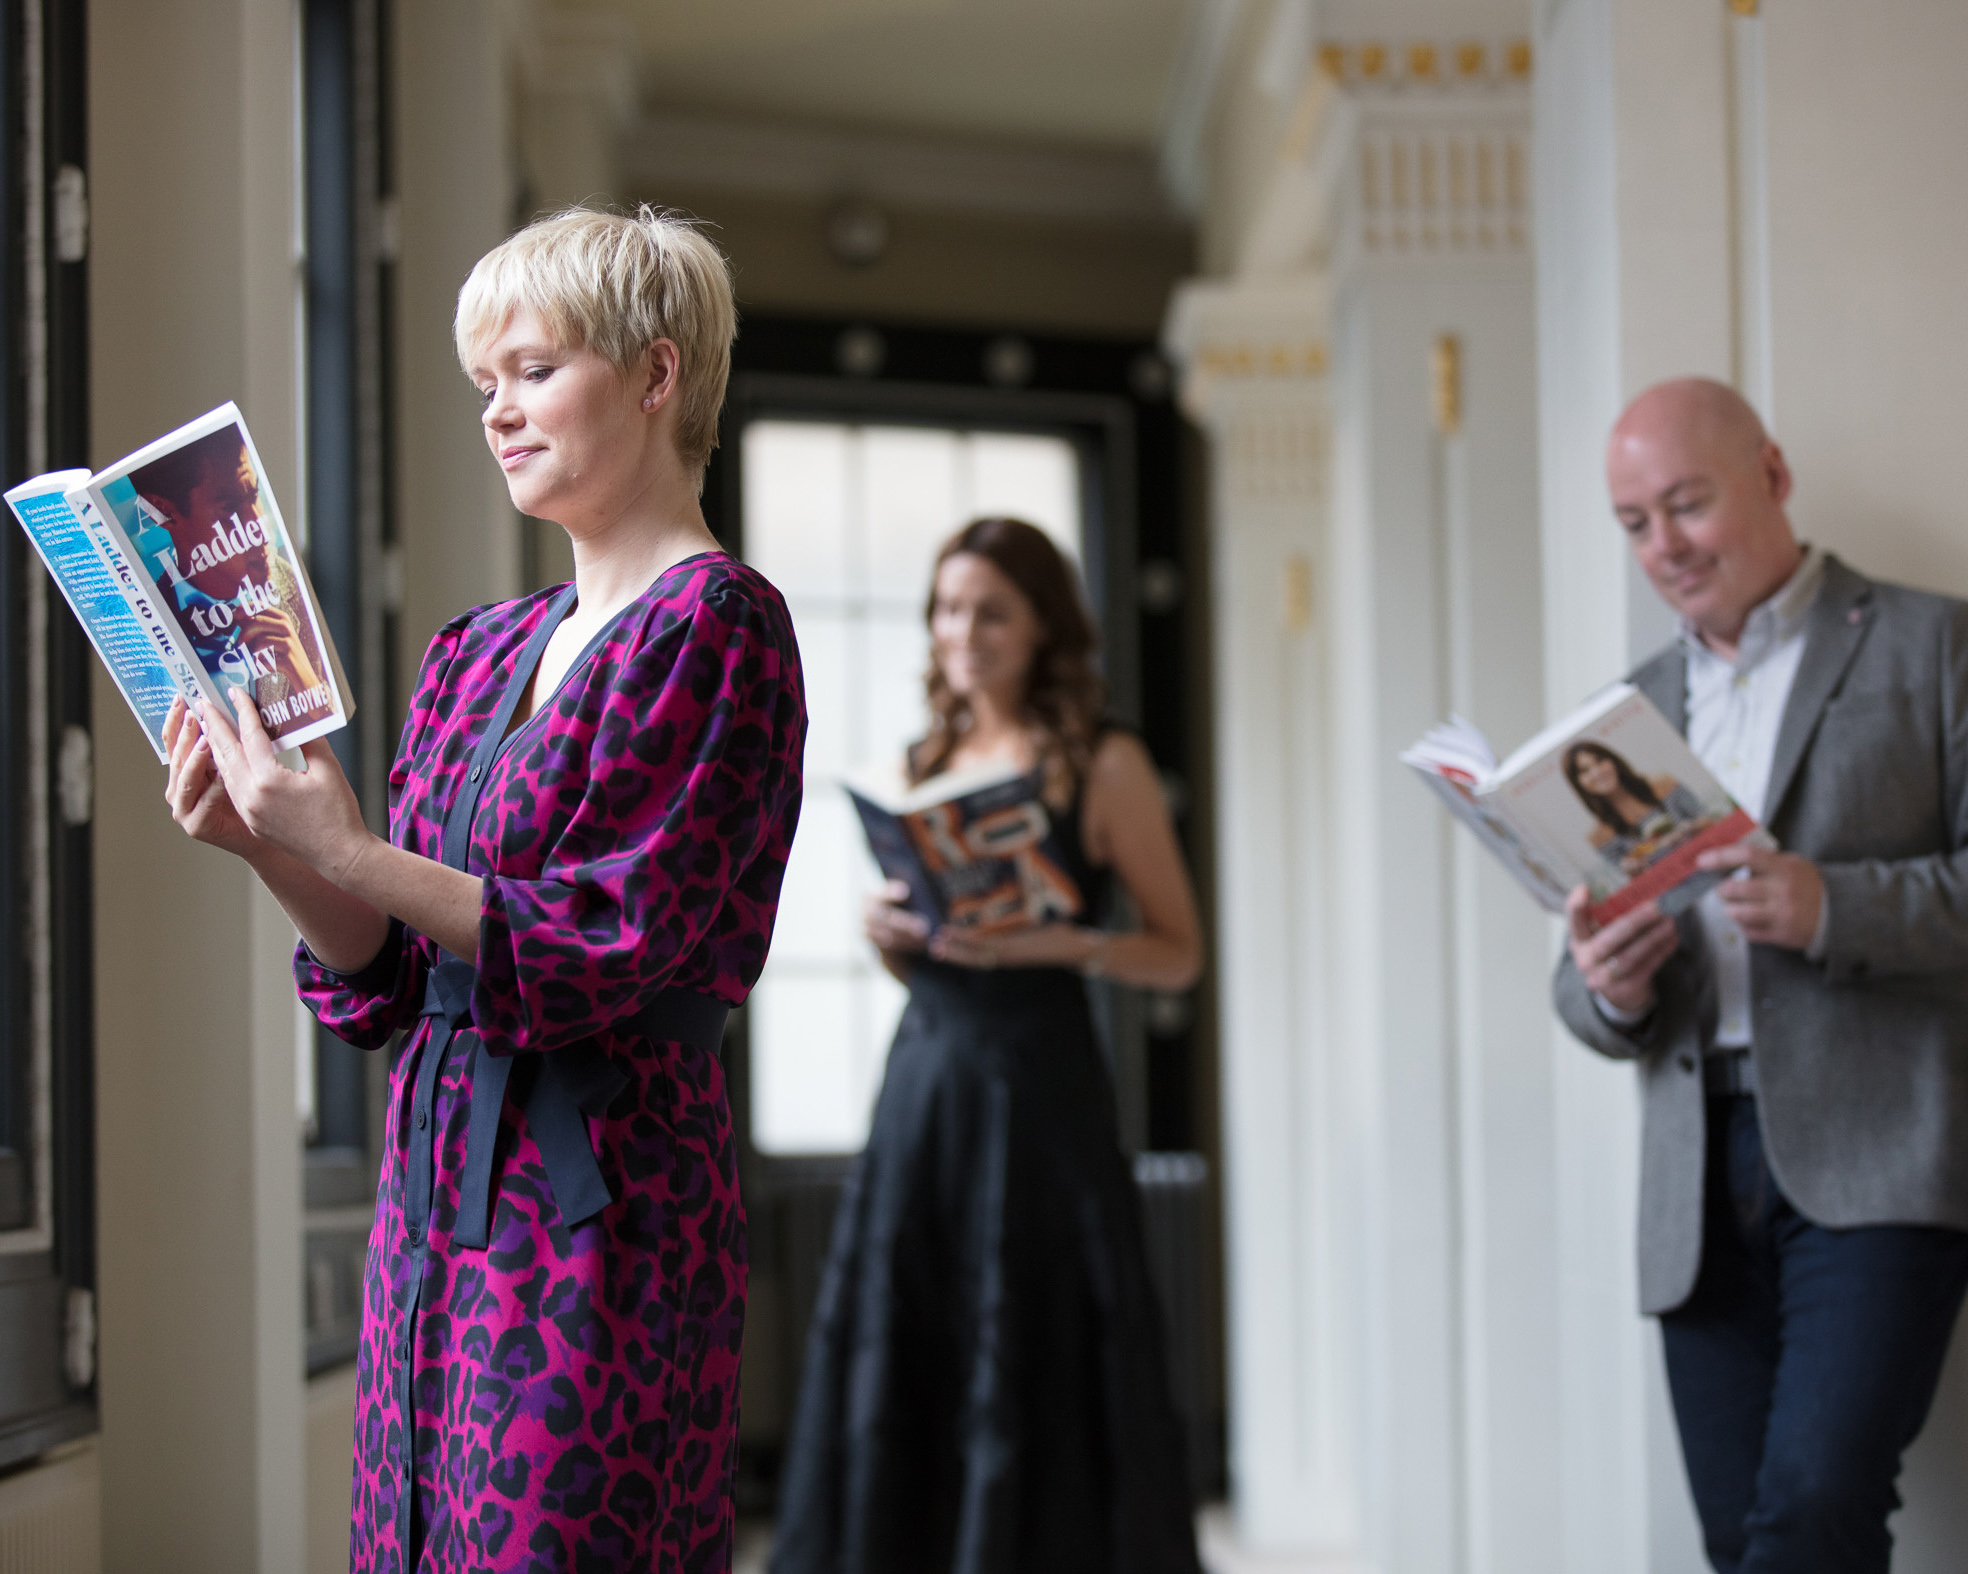 Pictured at the announcement of the shortlist for the An Post Irish Book Awards 2018 were: Cecelia Ahern, John Boyne and Holly White